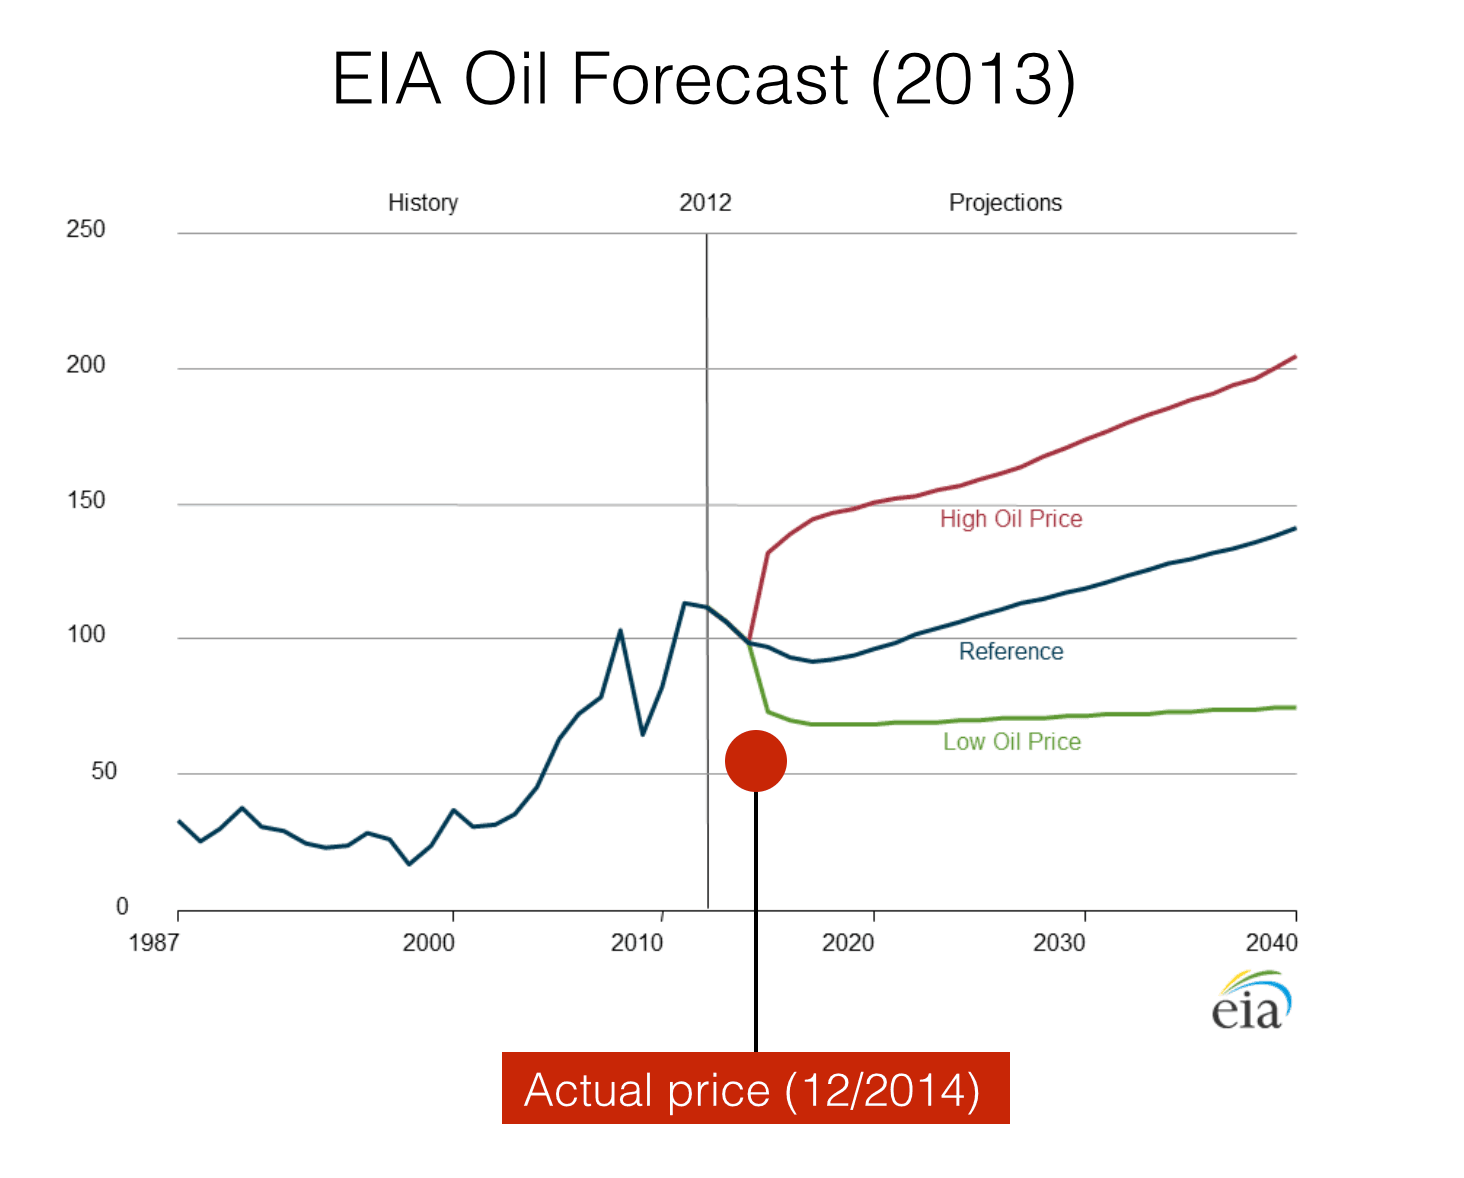 The US EIA's oil forces, compared to actual prices